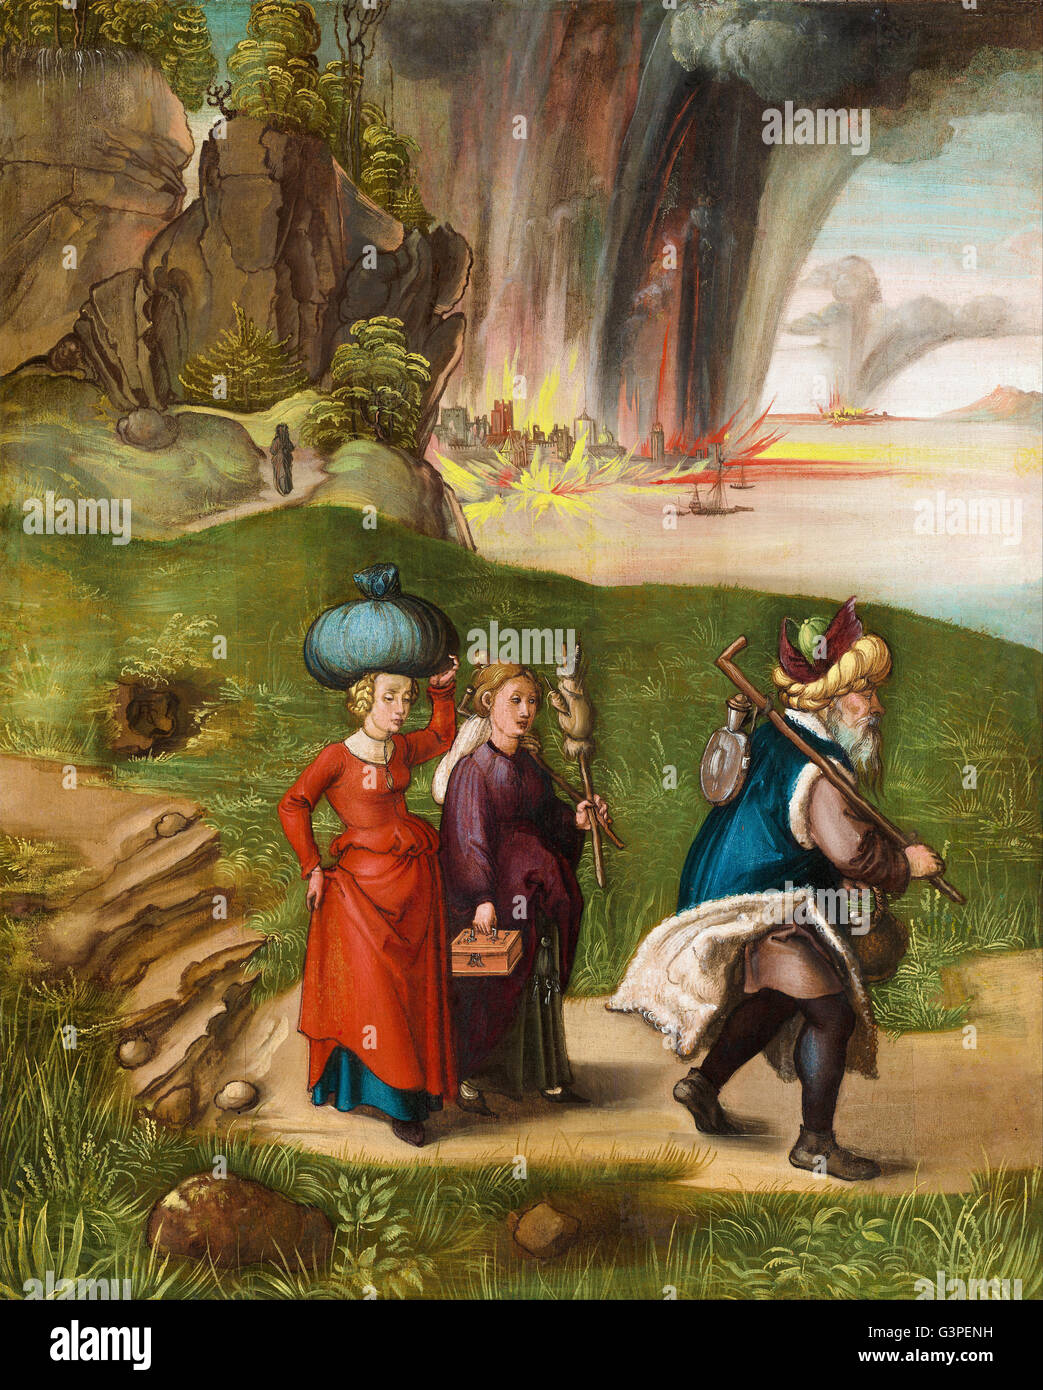 Albrecht Durer - Lot and His Daughters (reverse) - National Gallery of Art, Washington DC - Stock Image